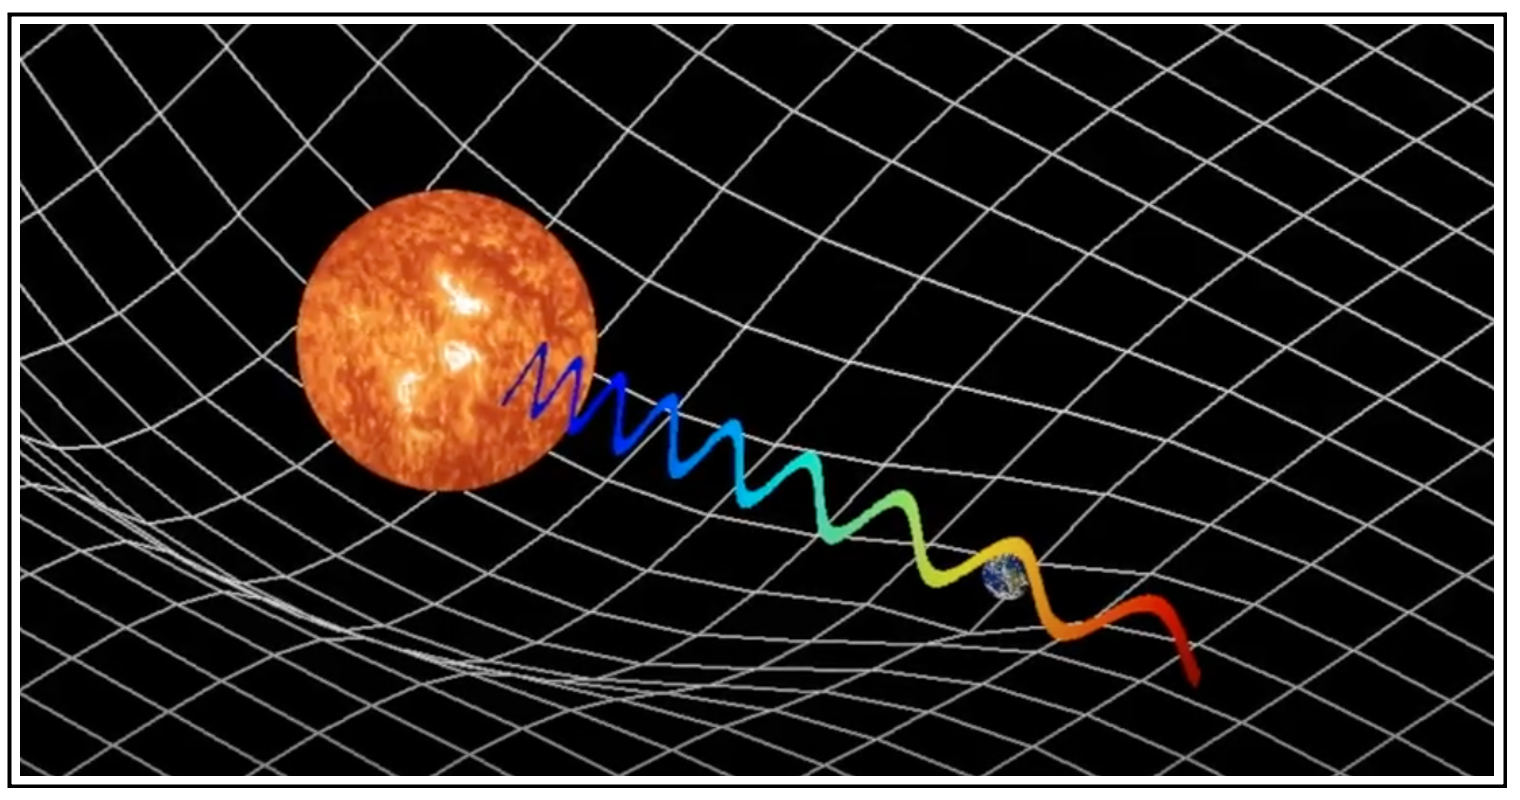 A schematic view of gravitational redshift